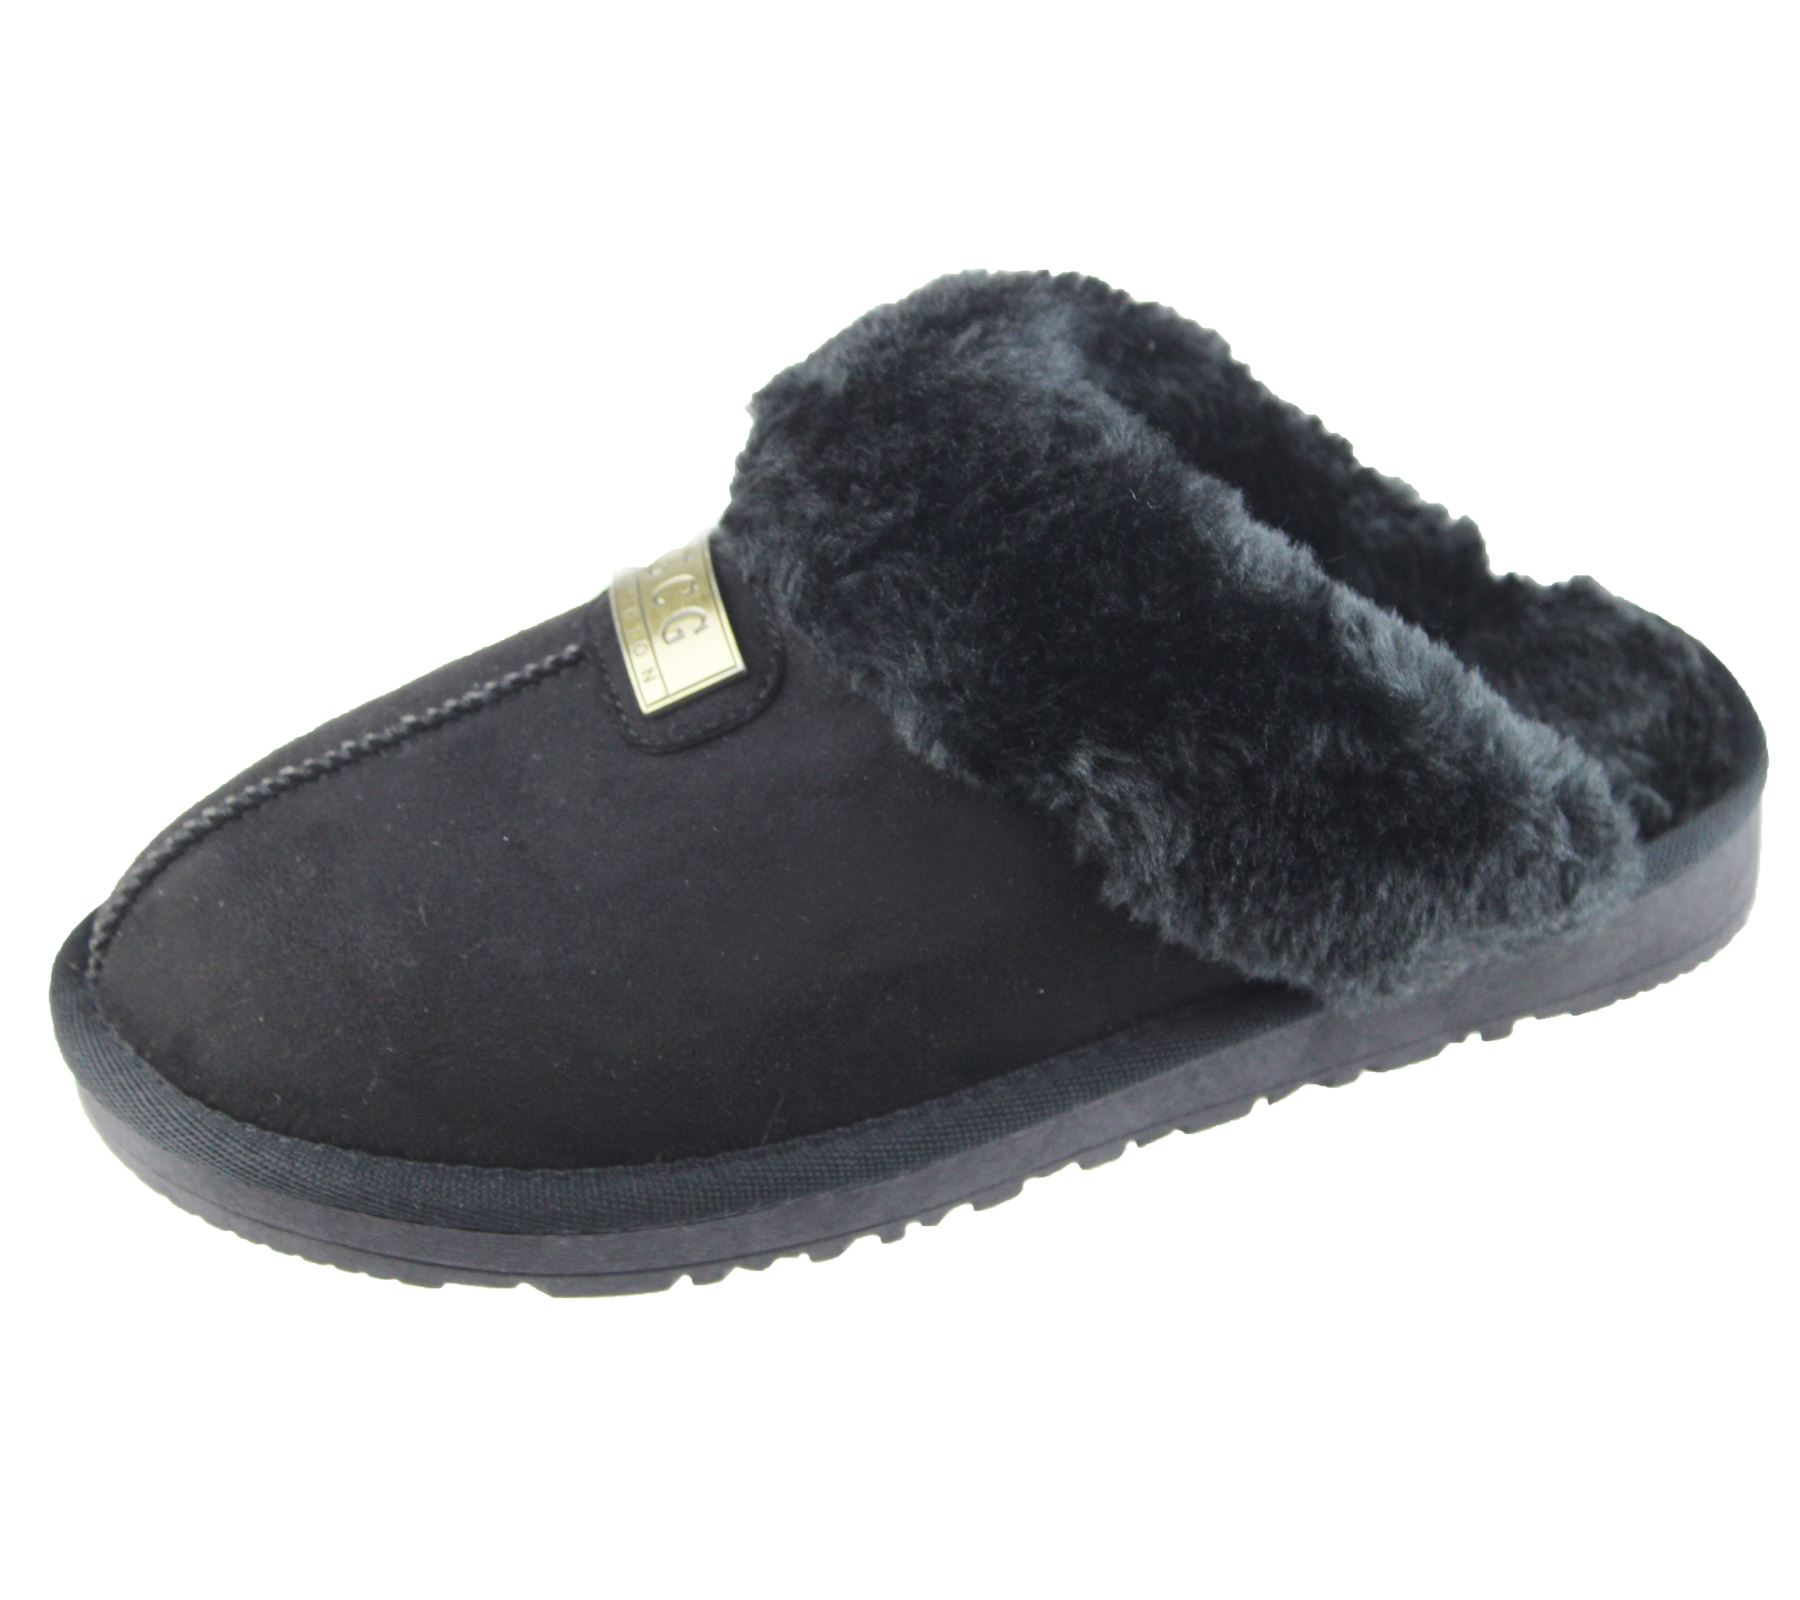 20b8c5786b3 Details about Womens Fur Lined Slippers Ladies Mules Non Slip Rubber Sole  Shoes